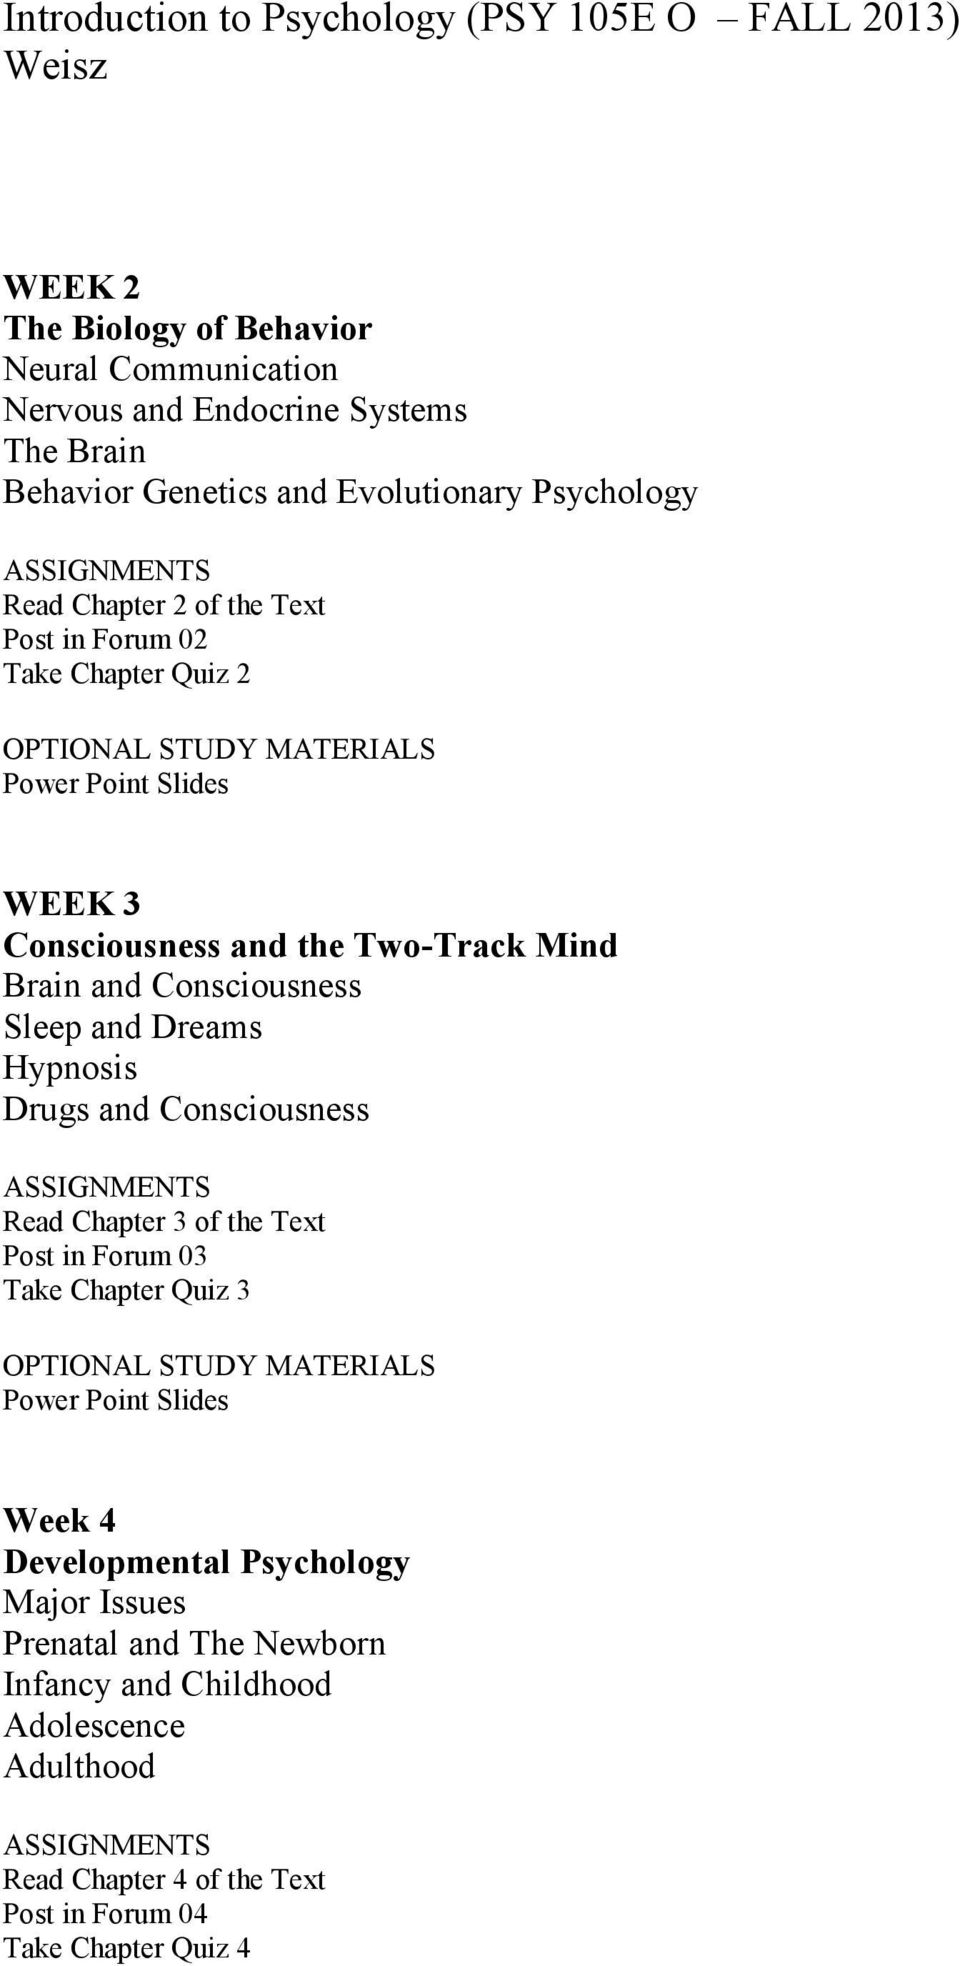 and Dreams Hypnosis Drugs and Consciousness Read Chapter 3 of the Text Post in Forum 03 Take Chapter Quiz 3 Week 4 Developmental Psychology